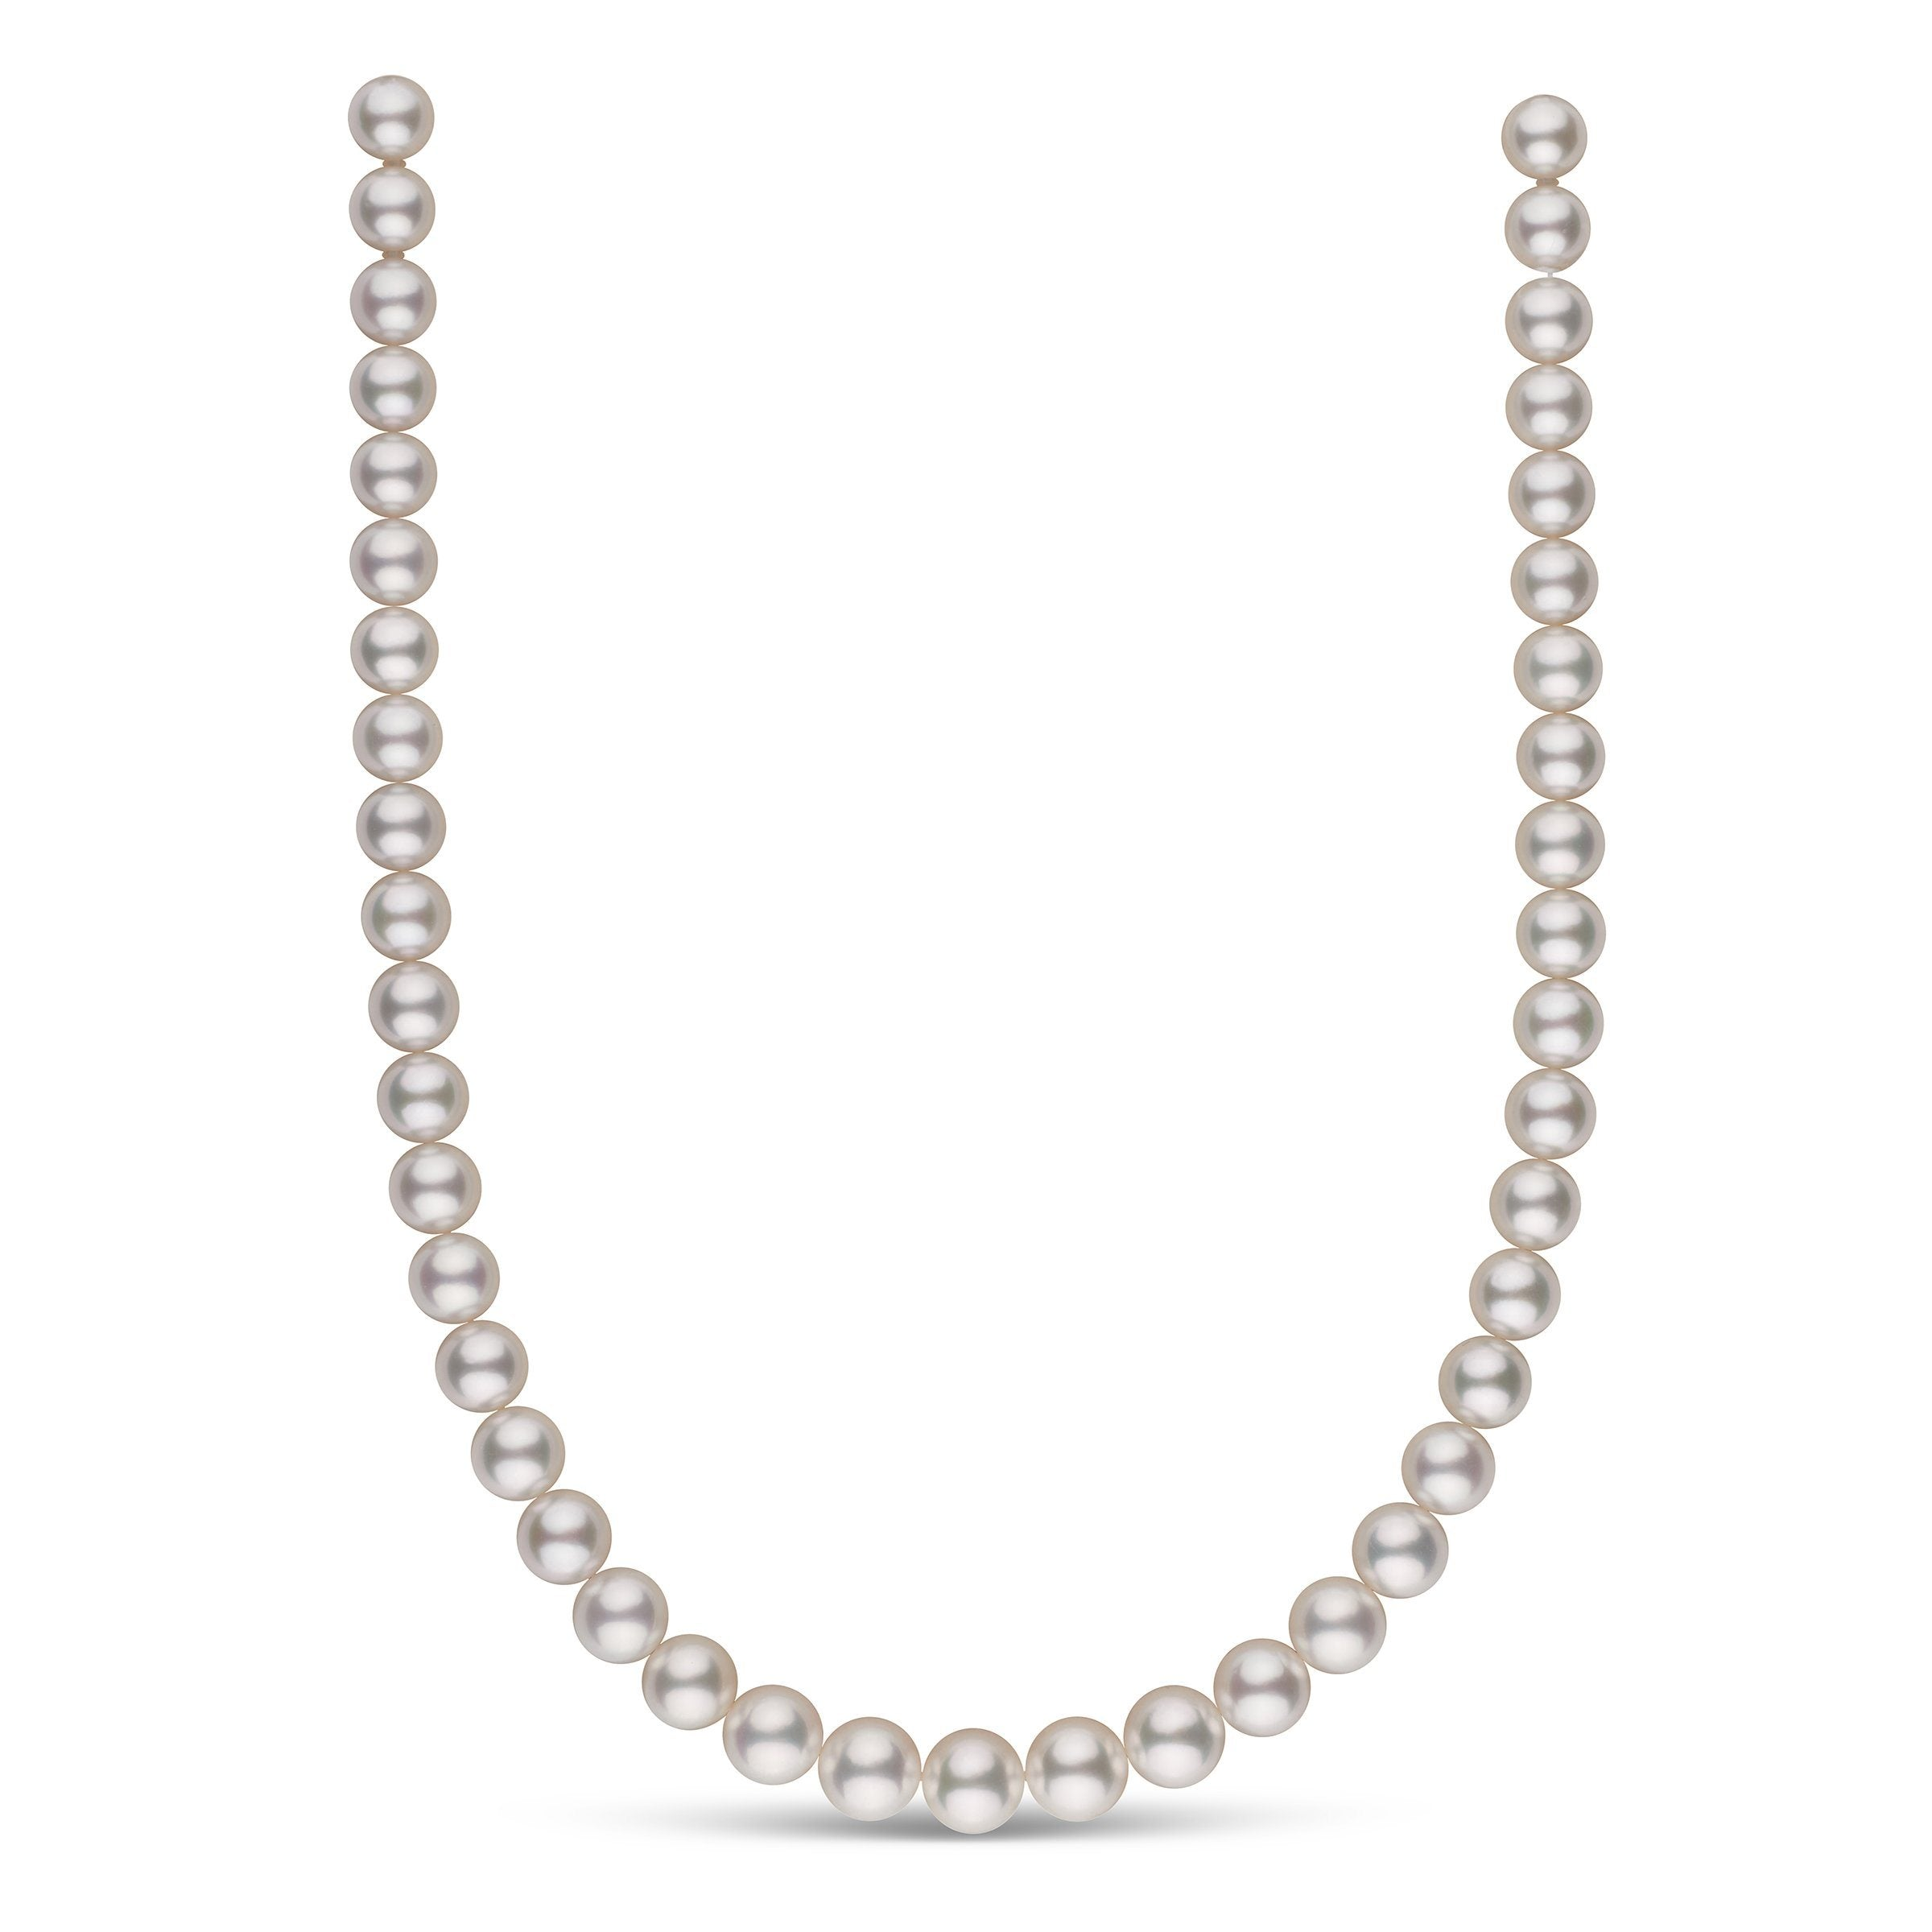 9.0-10.9 mm AAA White South Sea Round Pearl Necklace